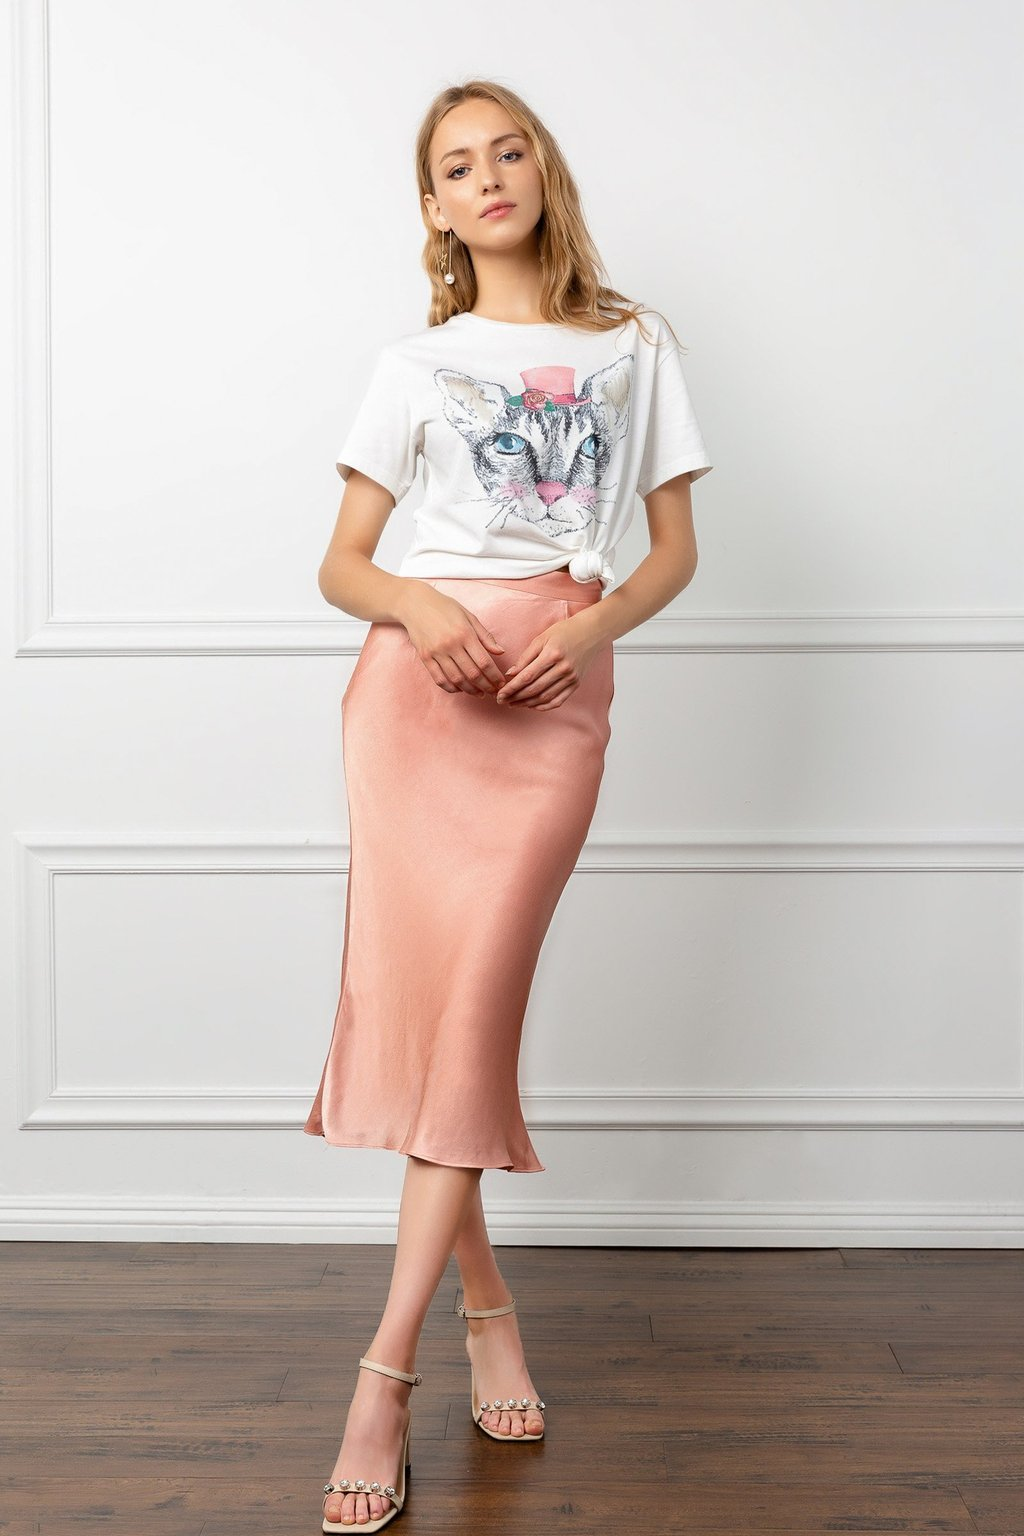 Satin Silky Peach Colored Midi Skirt by J.ING women's fashion clothing